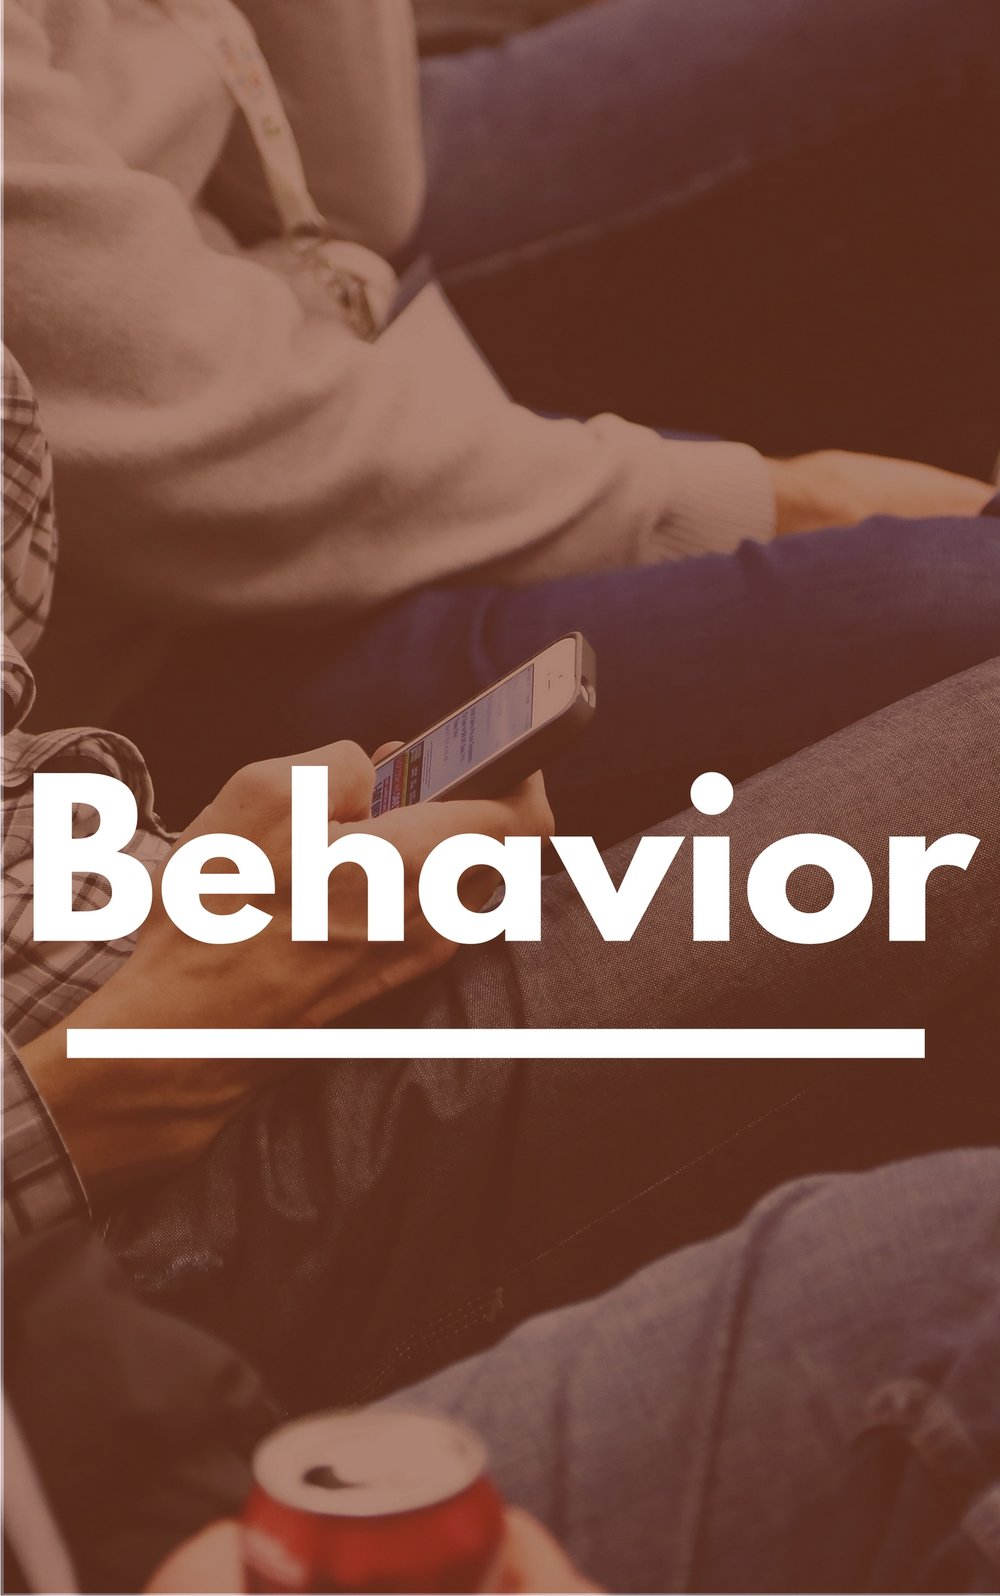 Behavior - Glen Rock Public Library - NJ